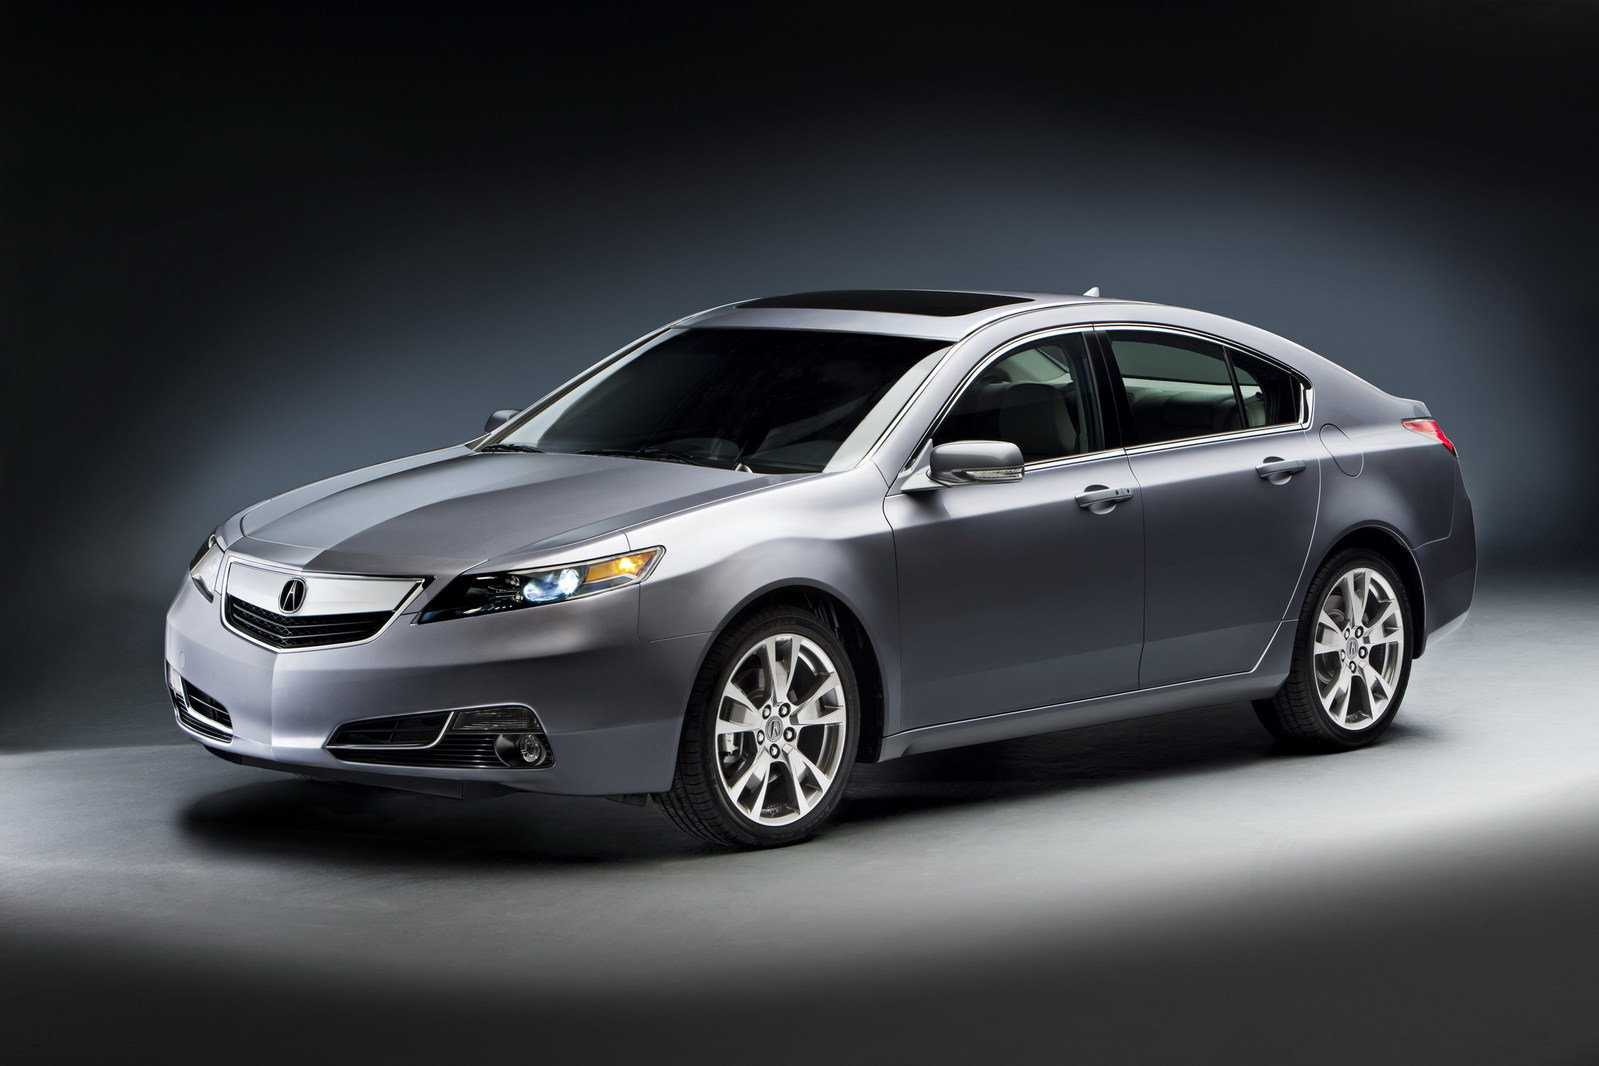 2012 Acura TL Review - Top Speed